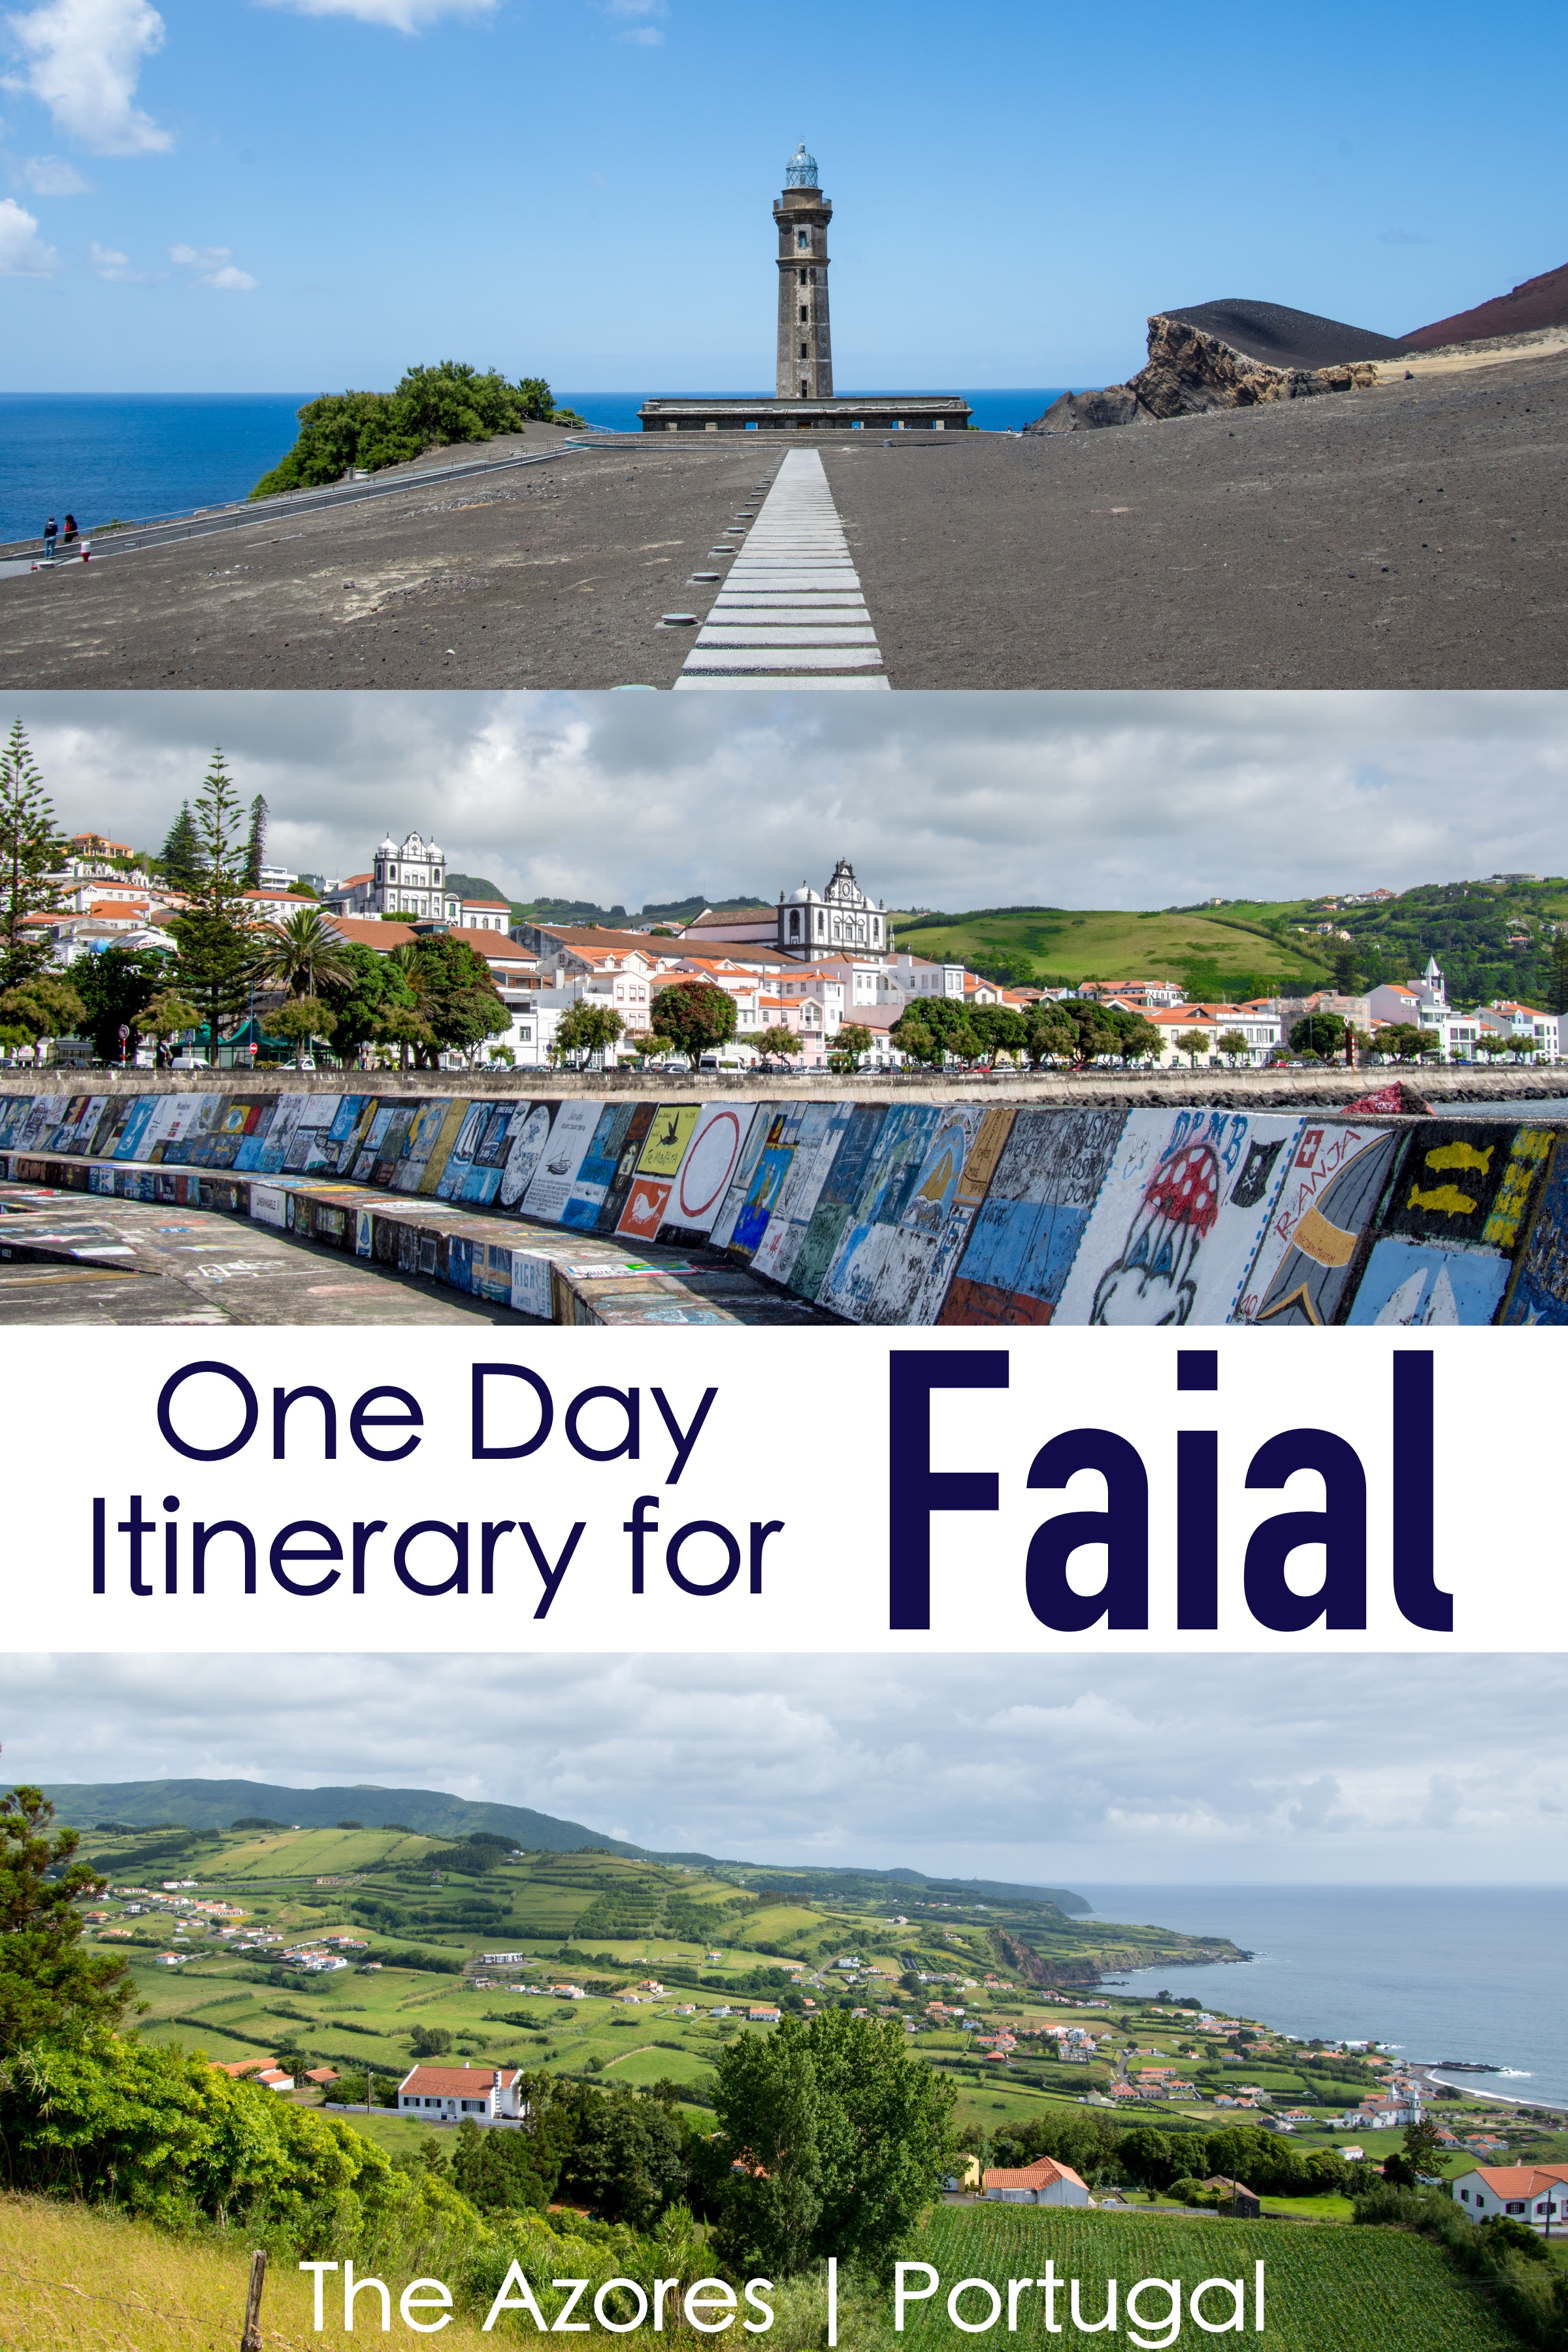 One Day on Faial Island in the Azores | Self-Driving Itinerary.  Faial Island is part of the Azores archipelago of Portugal. #portugal #azores #faial #horta